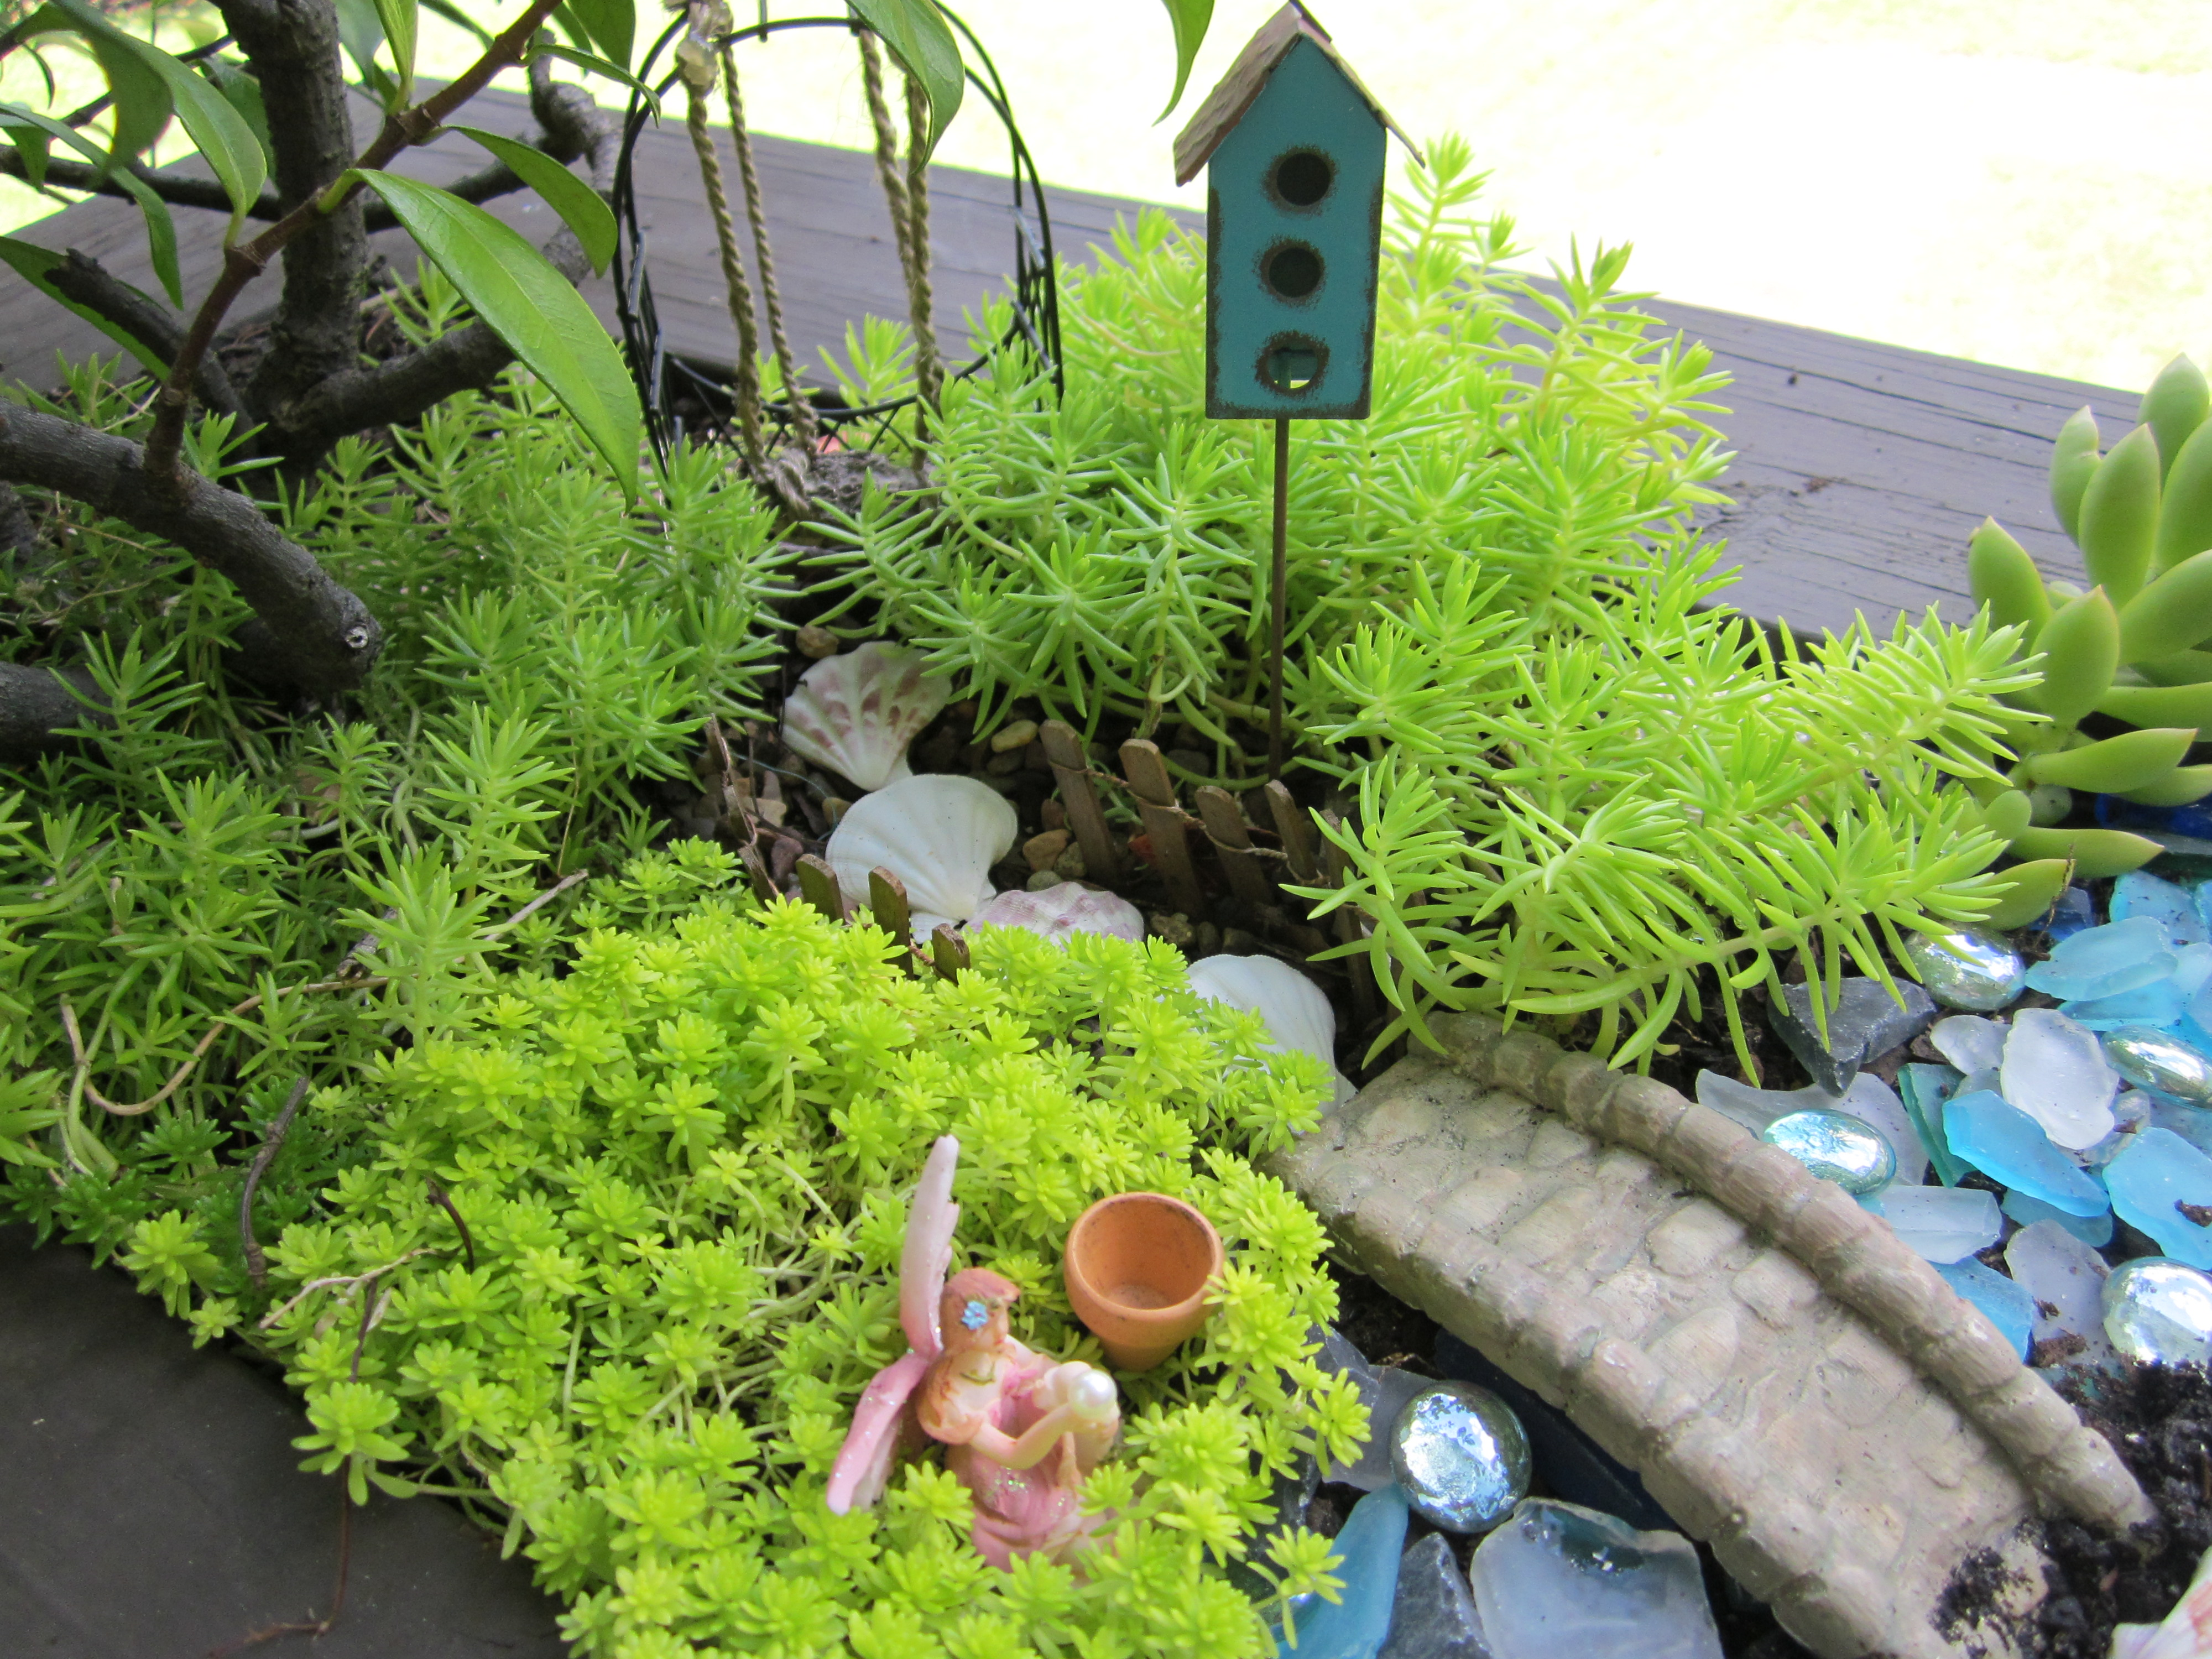 Fairy gardens theroommom for Fairy garden images